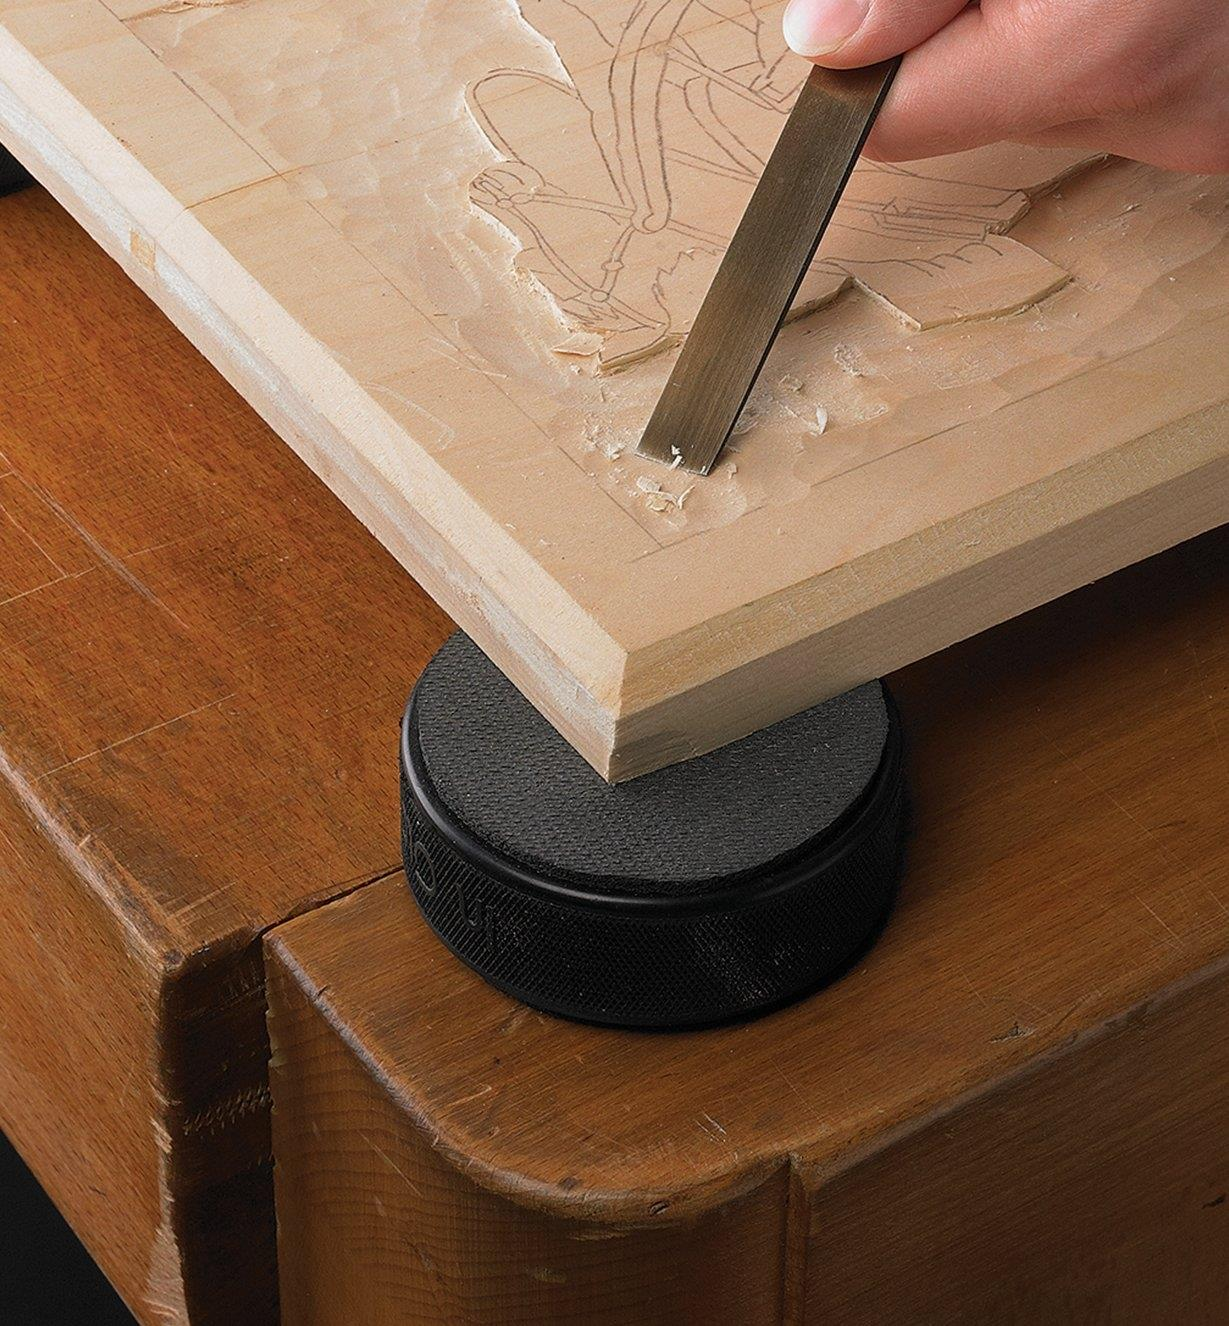 Grip disc attached to a hockey puck, used as a work standoff under a relief carving